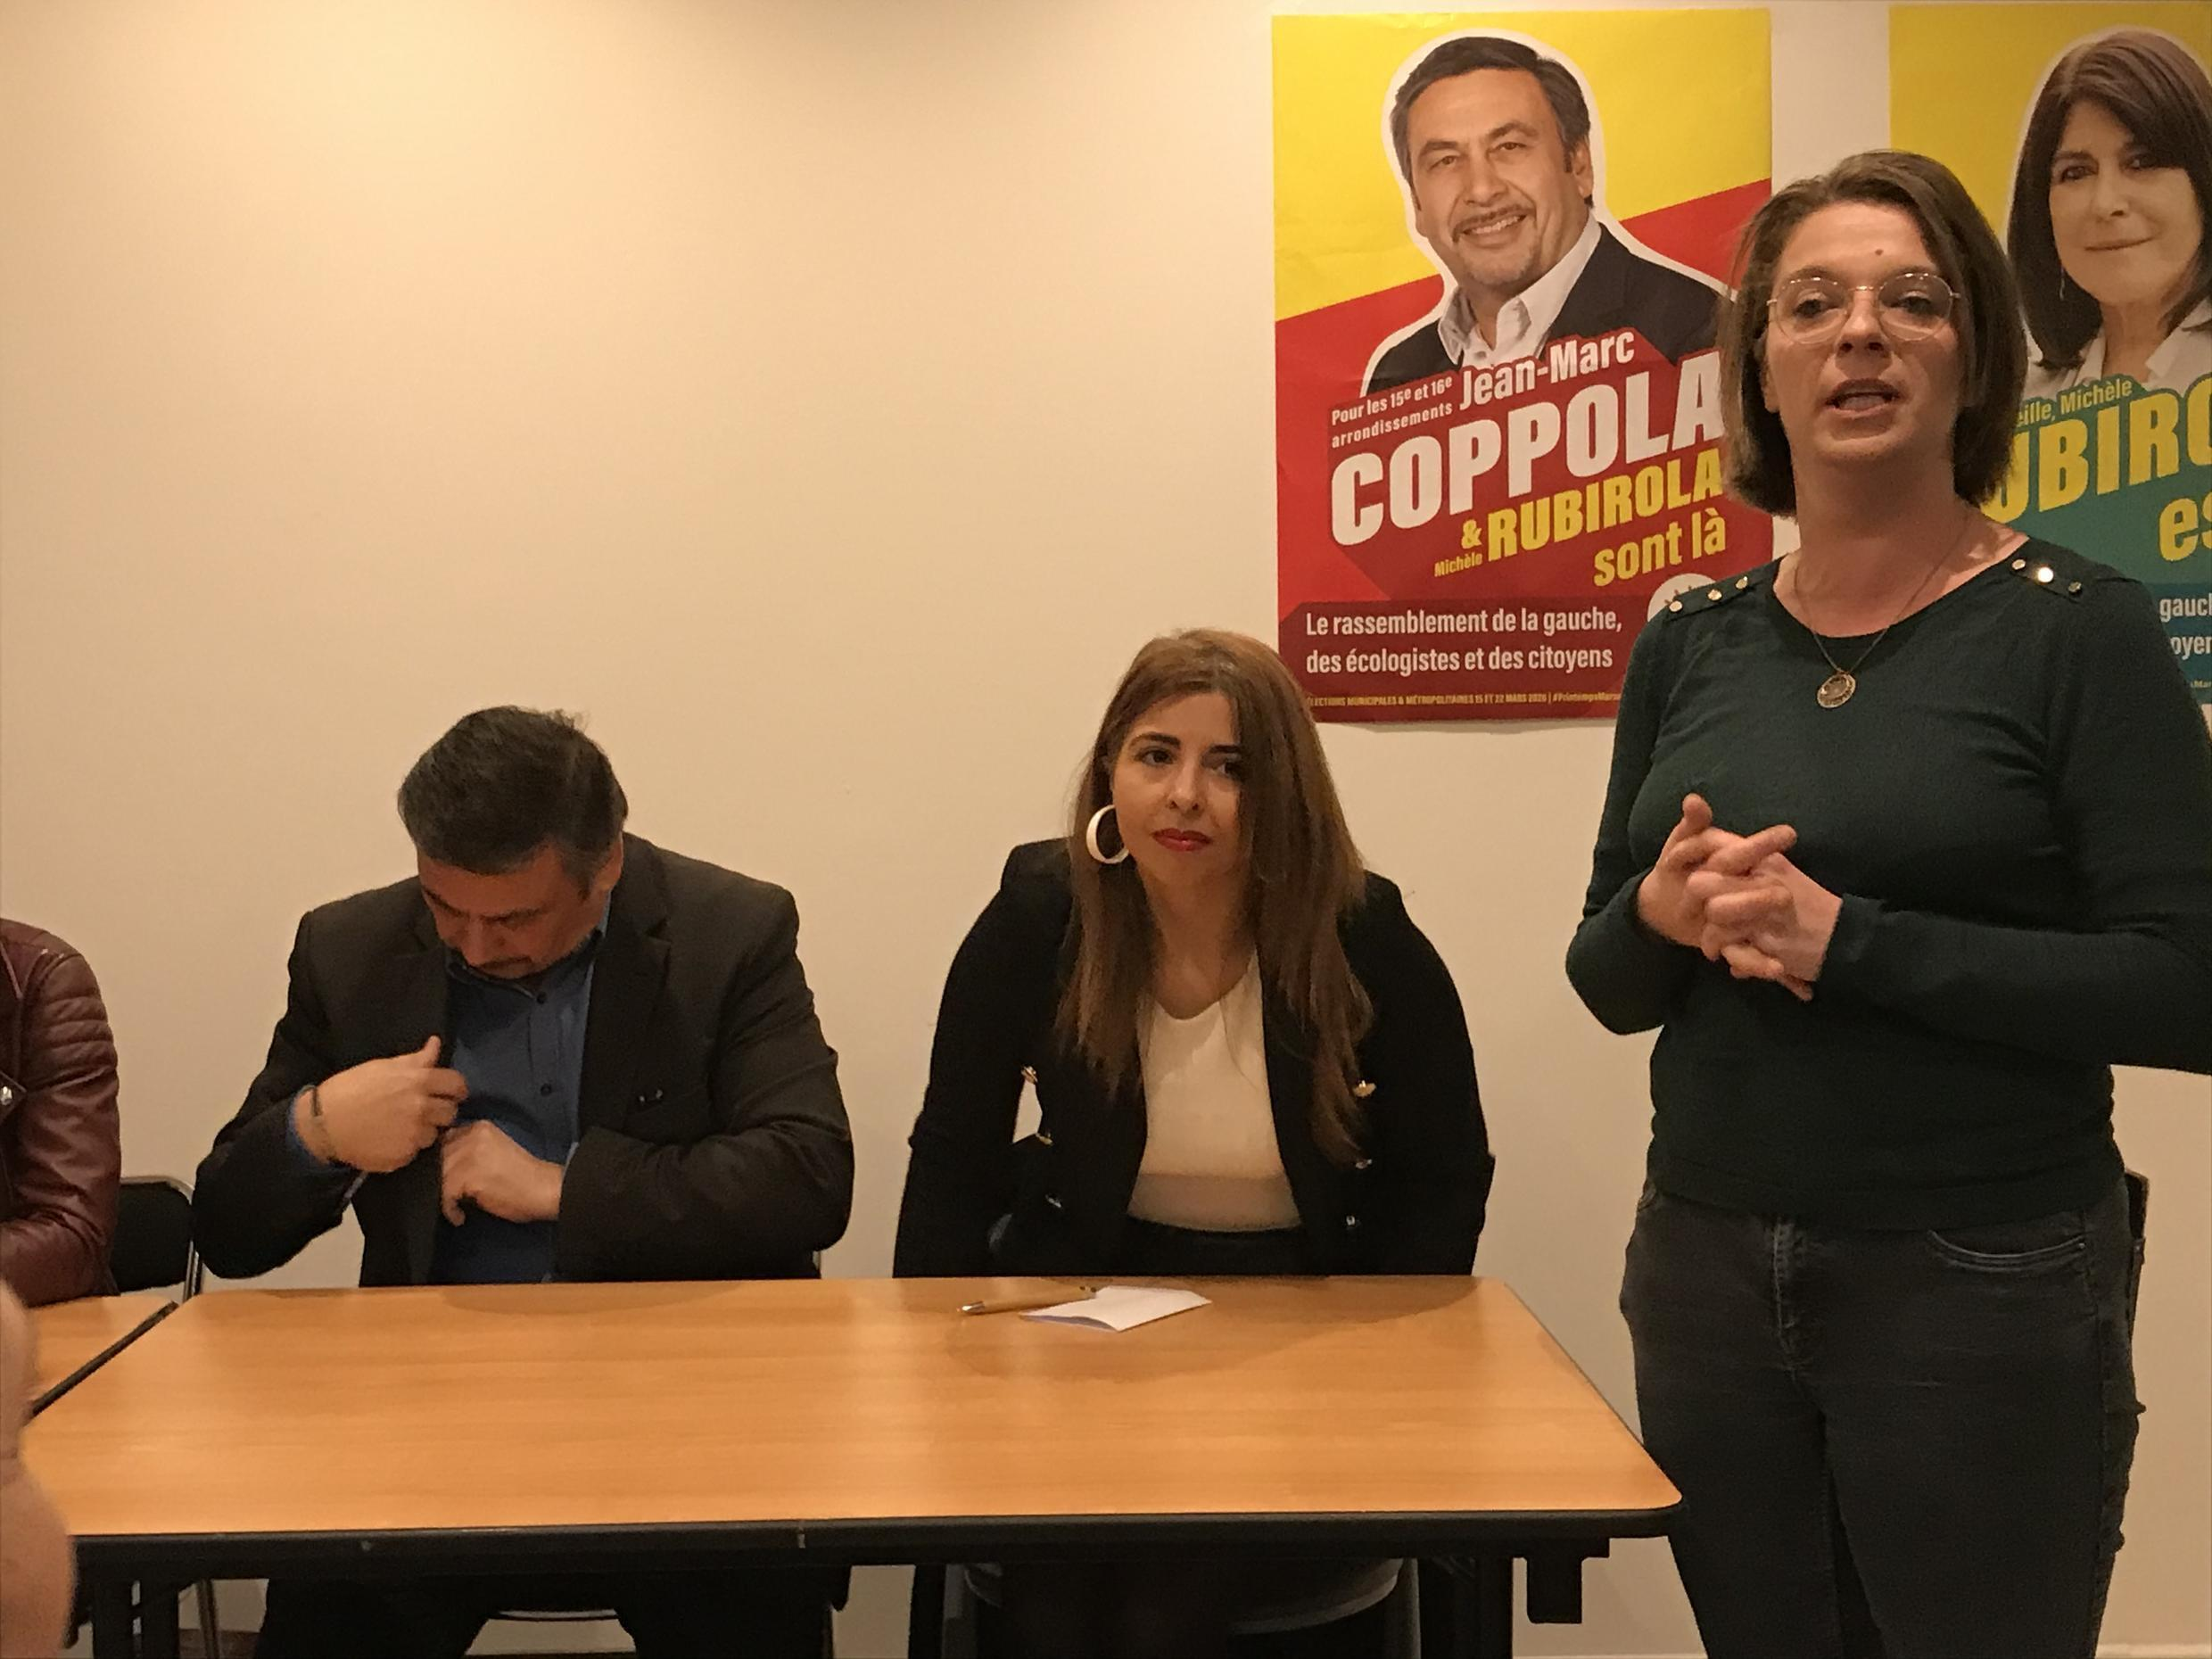 Teacher Farida Hamadi addresses a meeting of the left-wing Printemps marseillais platform, led by Jean-Marc Coppola.